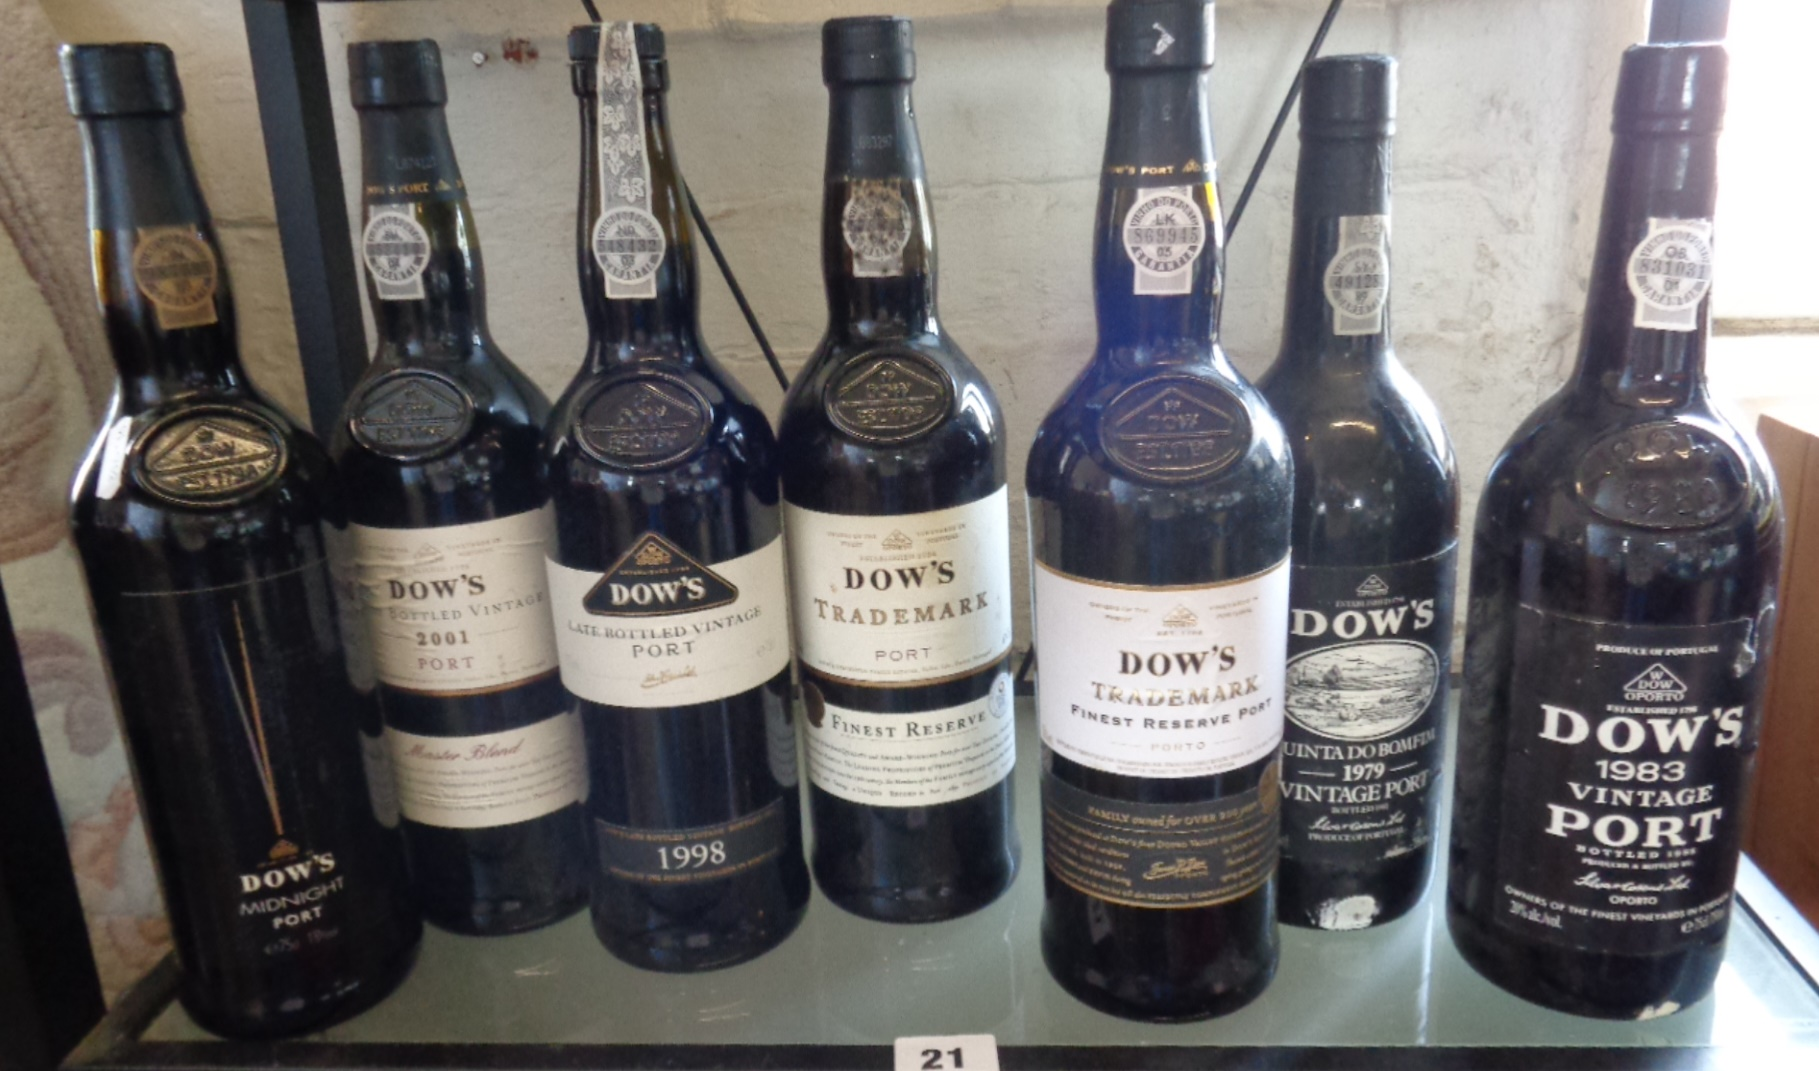 Lot 21 - Bottles of Dow's vintage port x 7, 2001, 1998, Trademark x 2, Midnight Port, 1979 and 1983